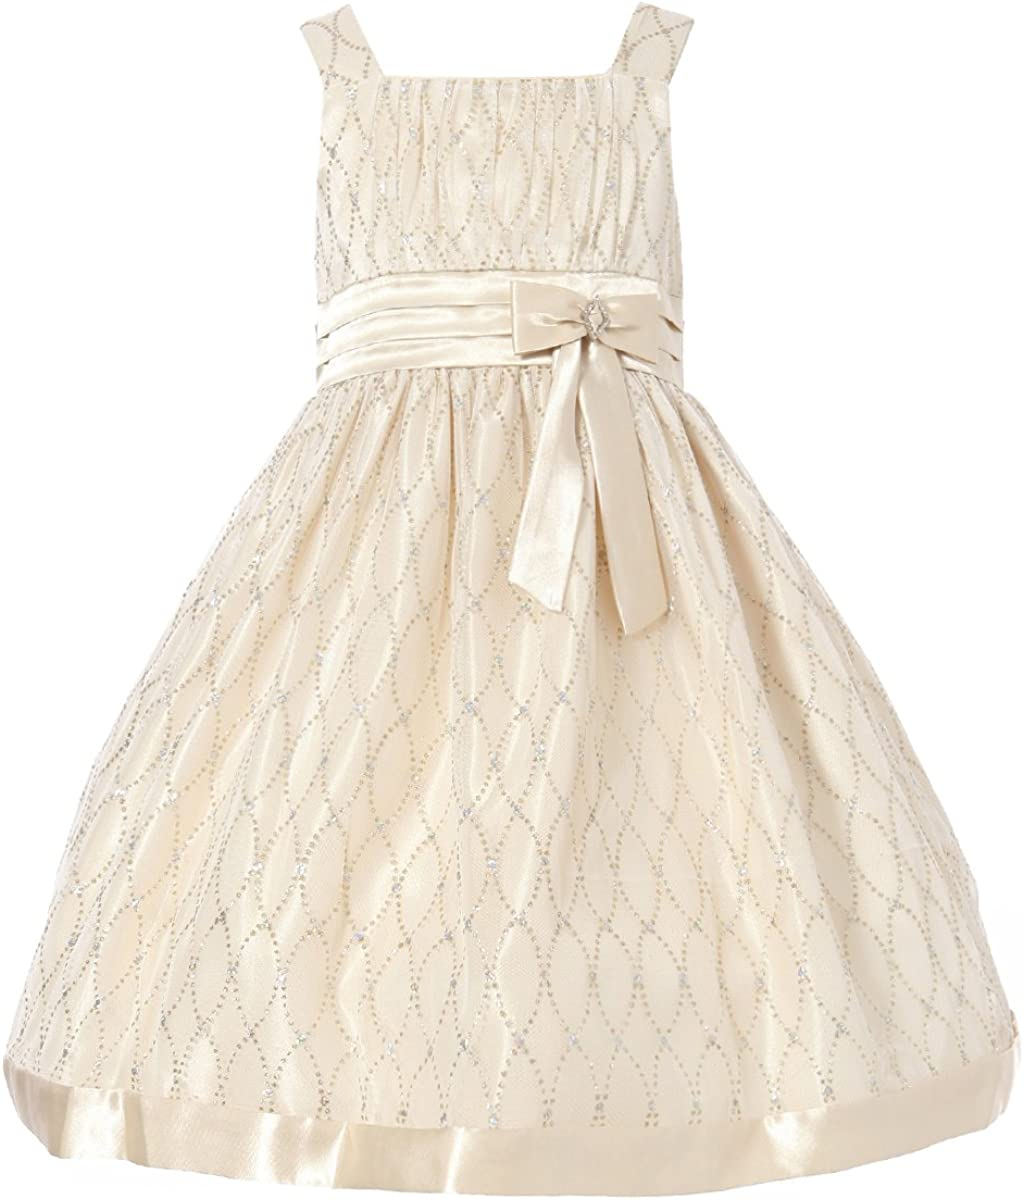 Richie House Little Girls' Dress with Bow Shiny Beads RH1021